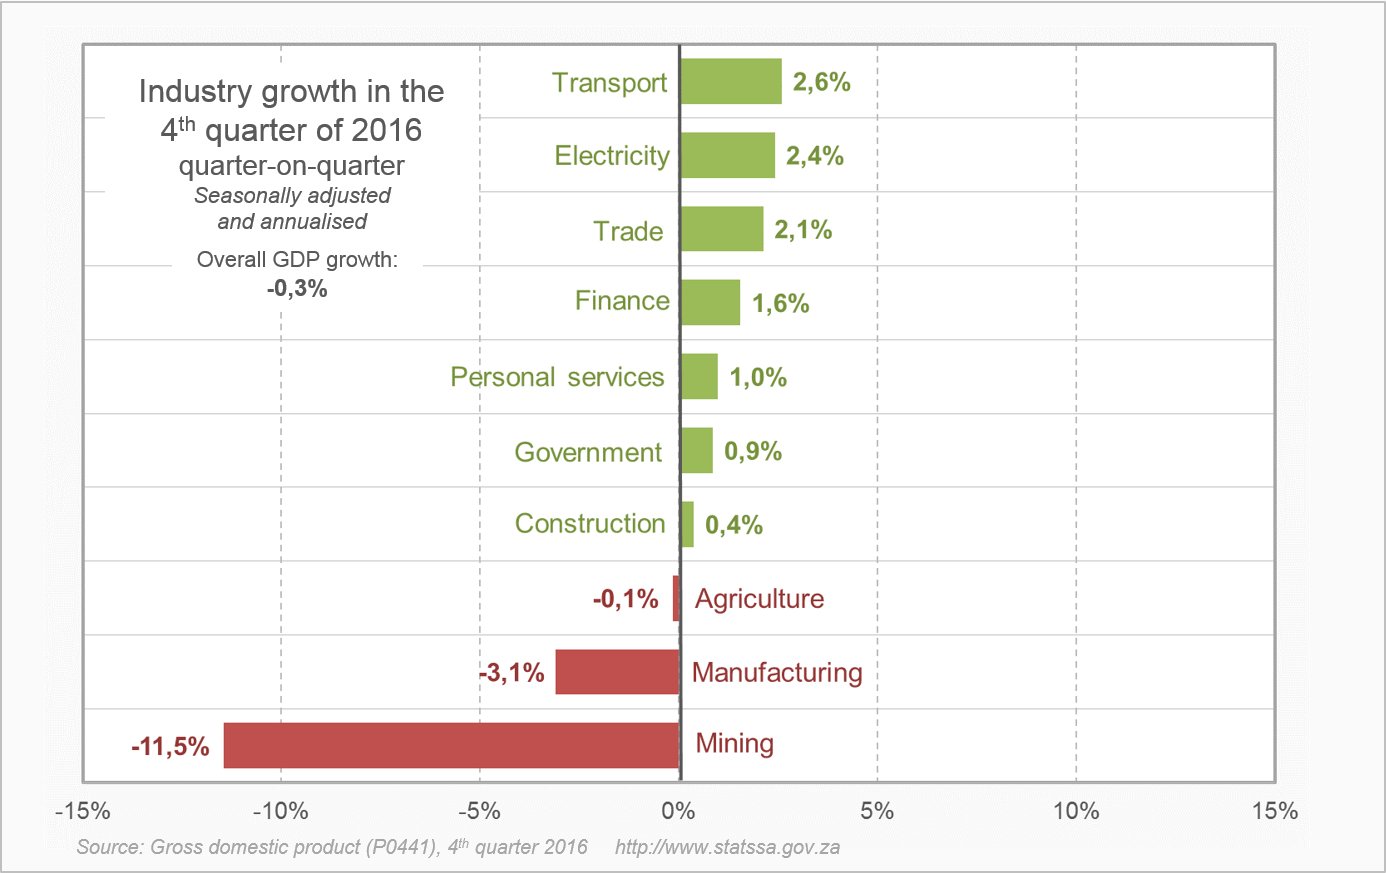 The 4th Quarter results of GDP as provided by the South African government (Stats SA)